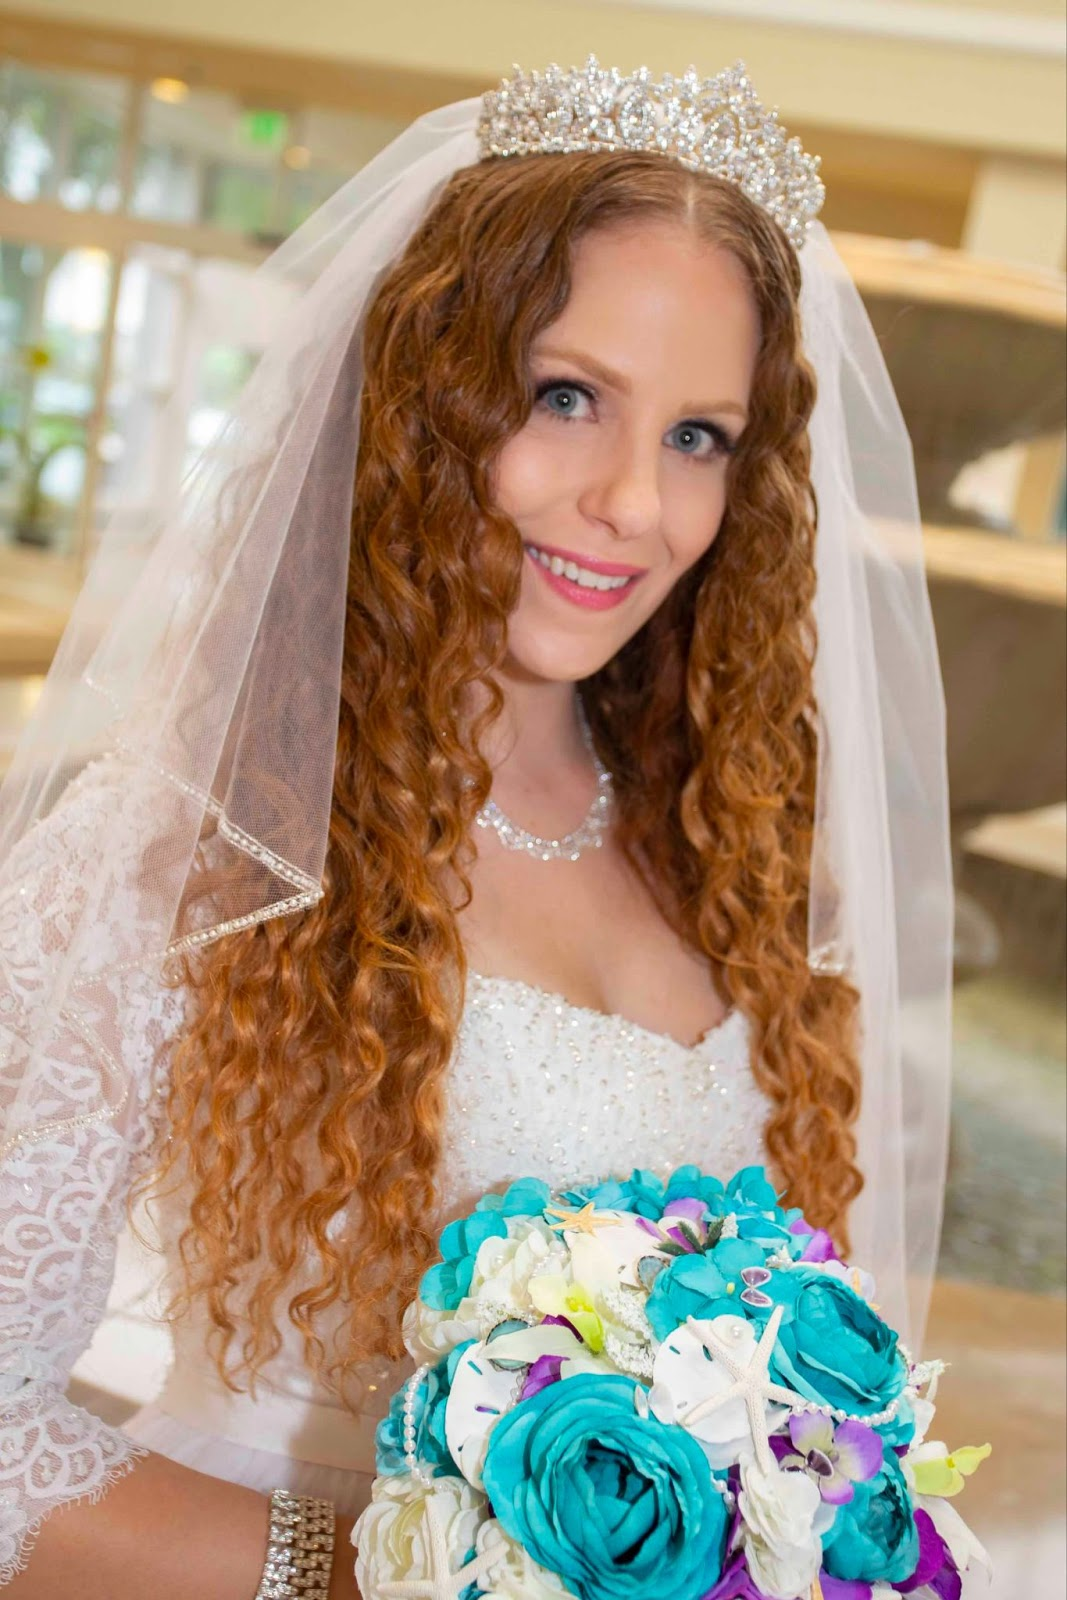 Writer Diance Mary embraces natural curly hair on her wedding day.